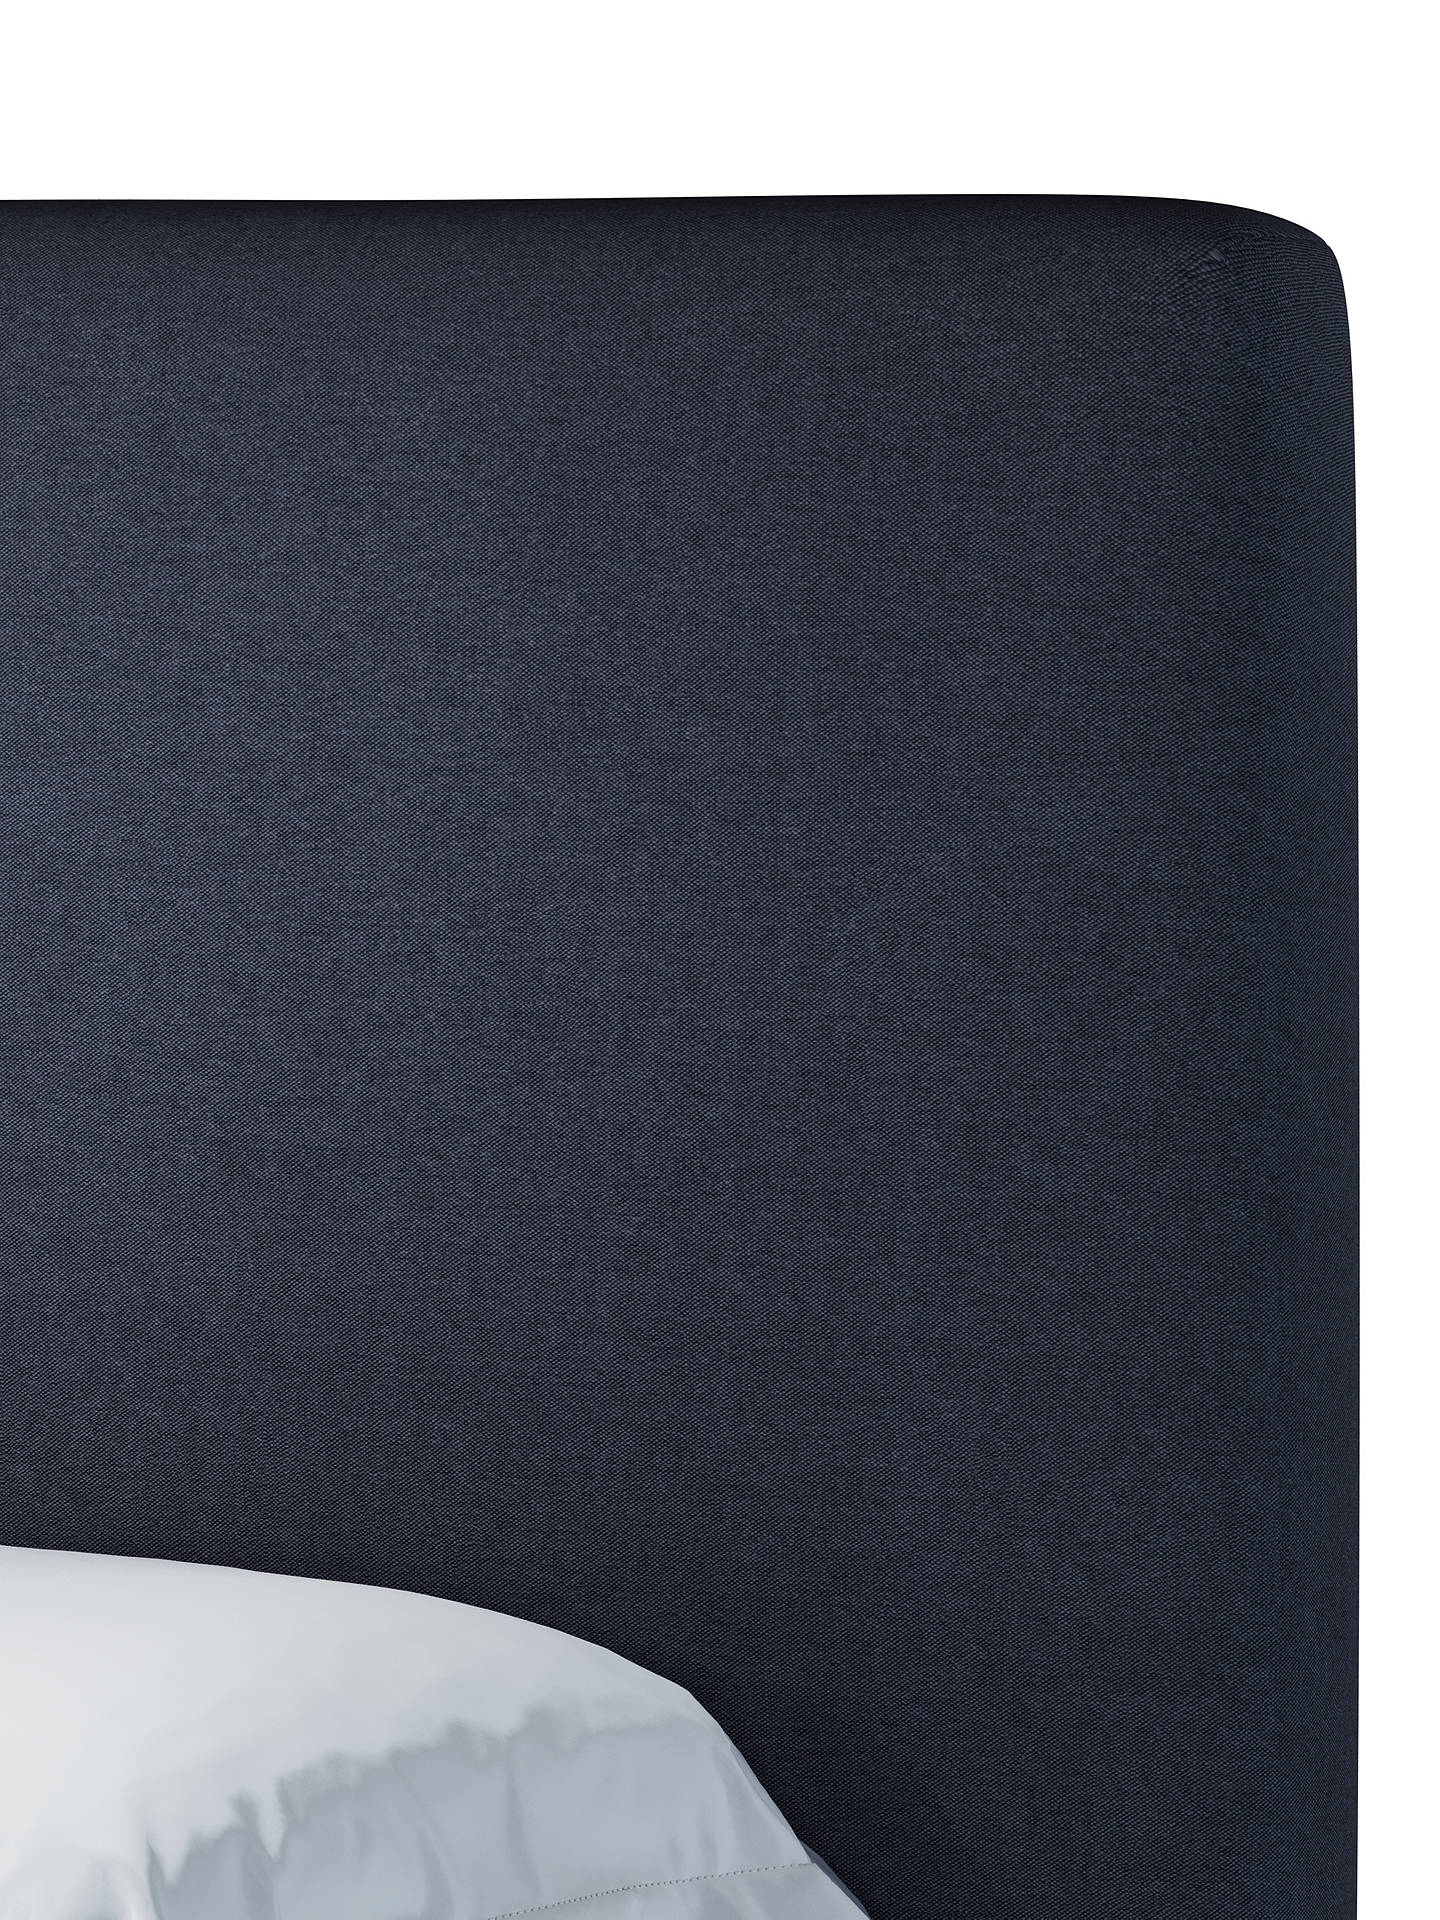 Buy John Lewis & Partners Emily Ottoman Storage Upholstered Bed Frame, Double, Marylamb Night Sky Online at johnlewis.com